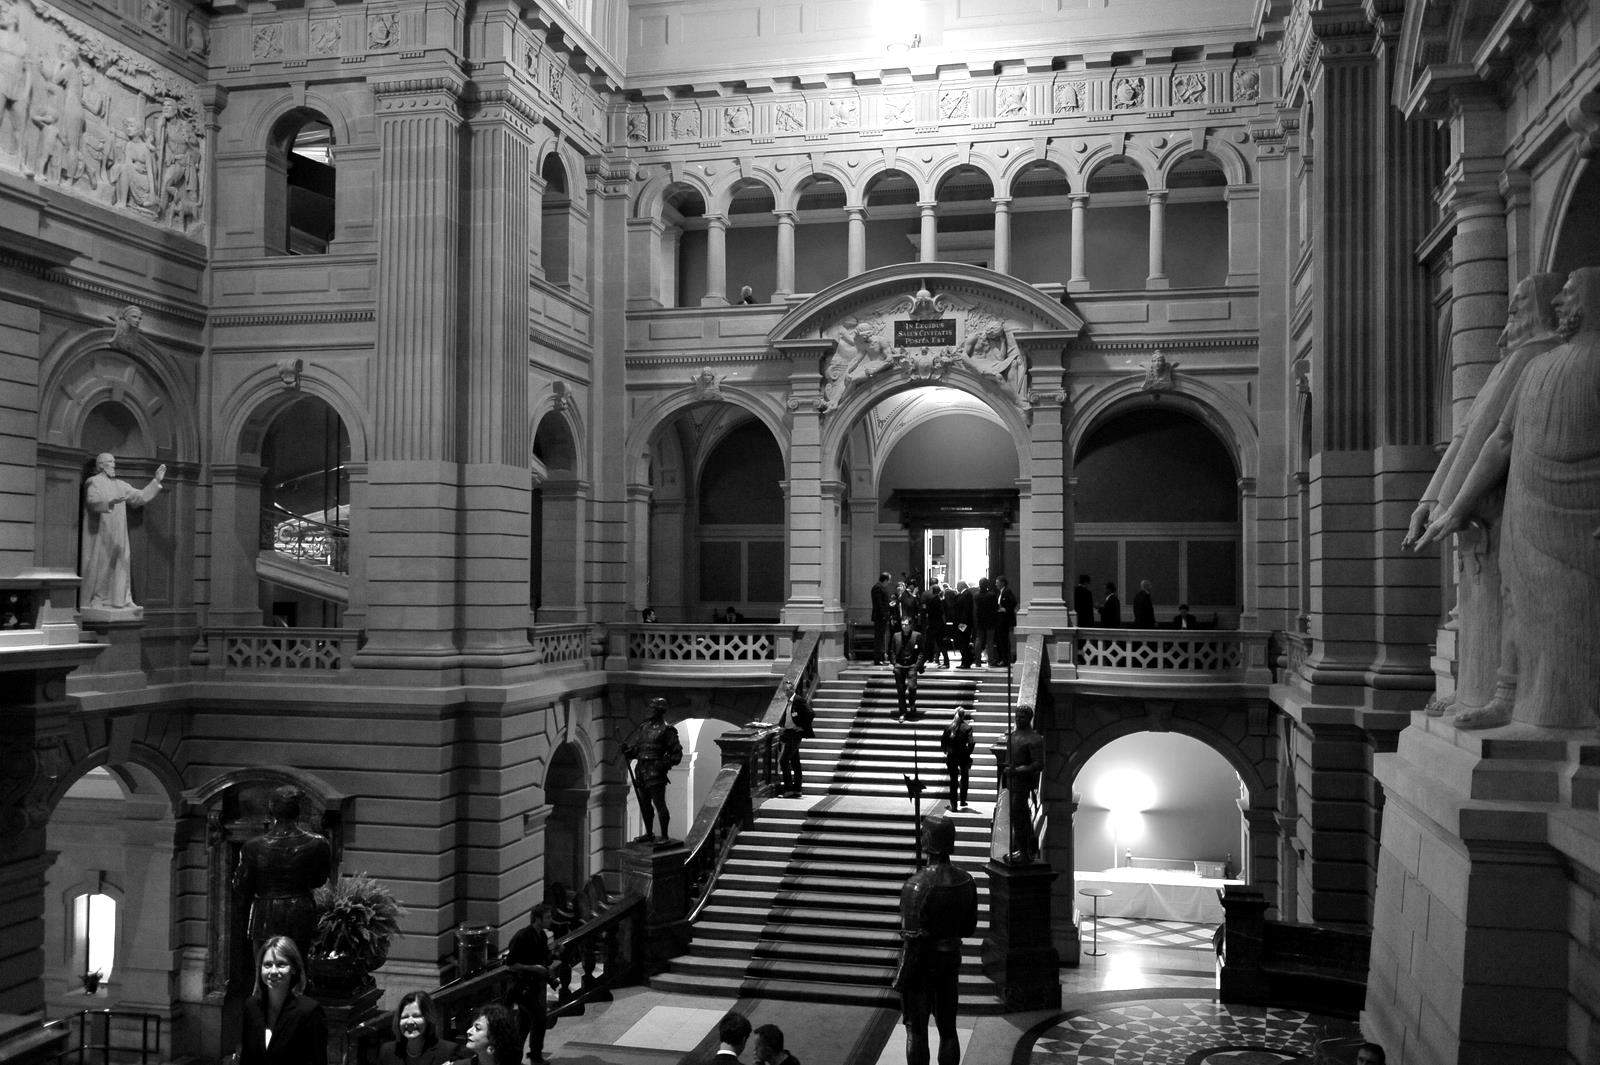 Inside the Federal Palace